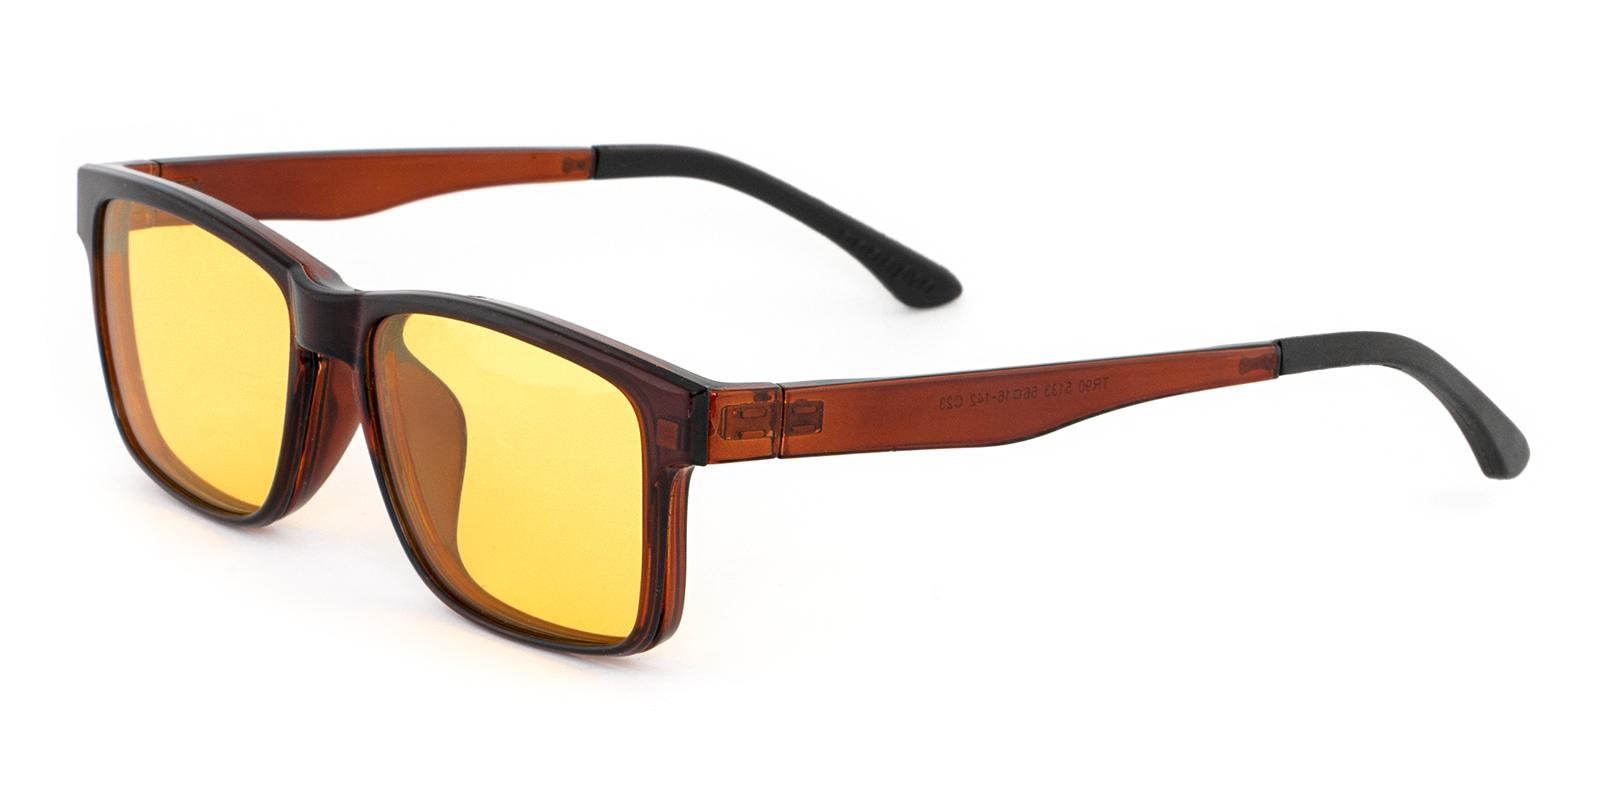 Styx Brown Combination Eyeglasses , Sunglasses , UniversalBridgeFit Frames from ABBE Glasses